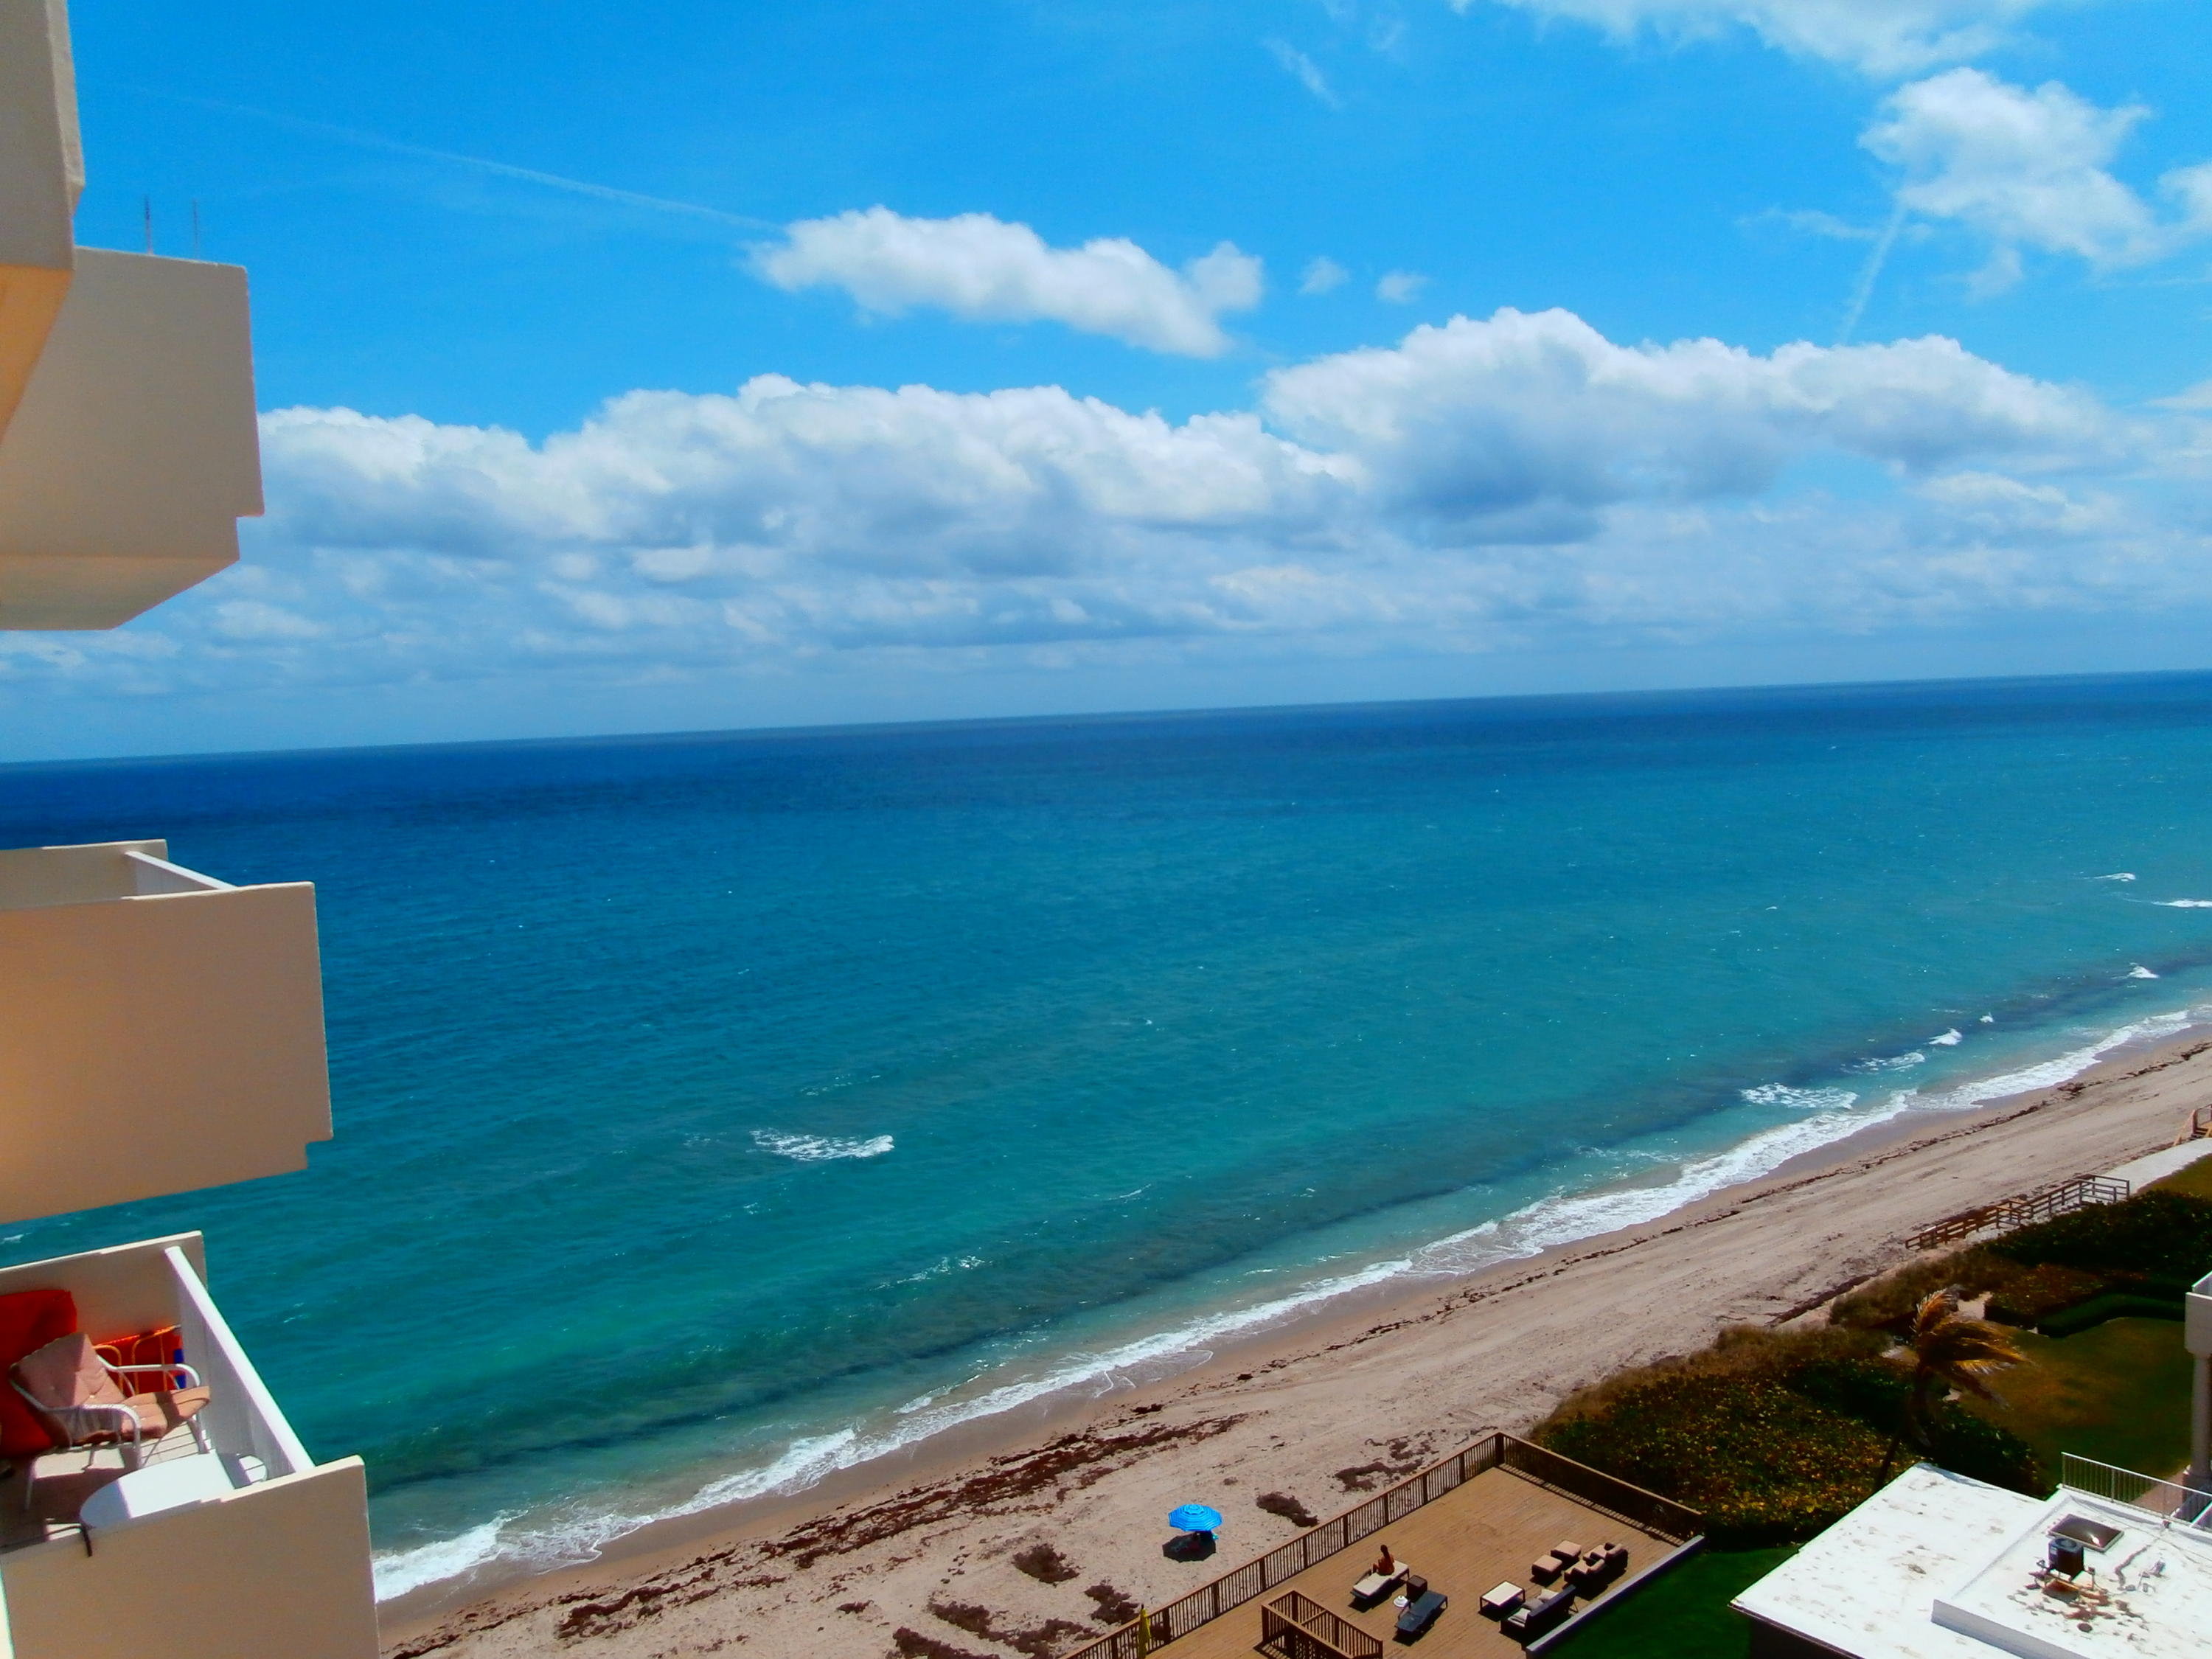 4511 S Ocean Boulevard, 1003 Penth - Highland Beach, Florida